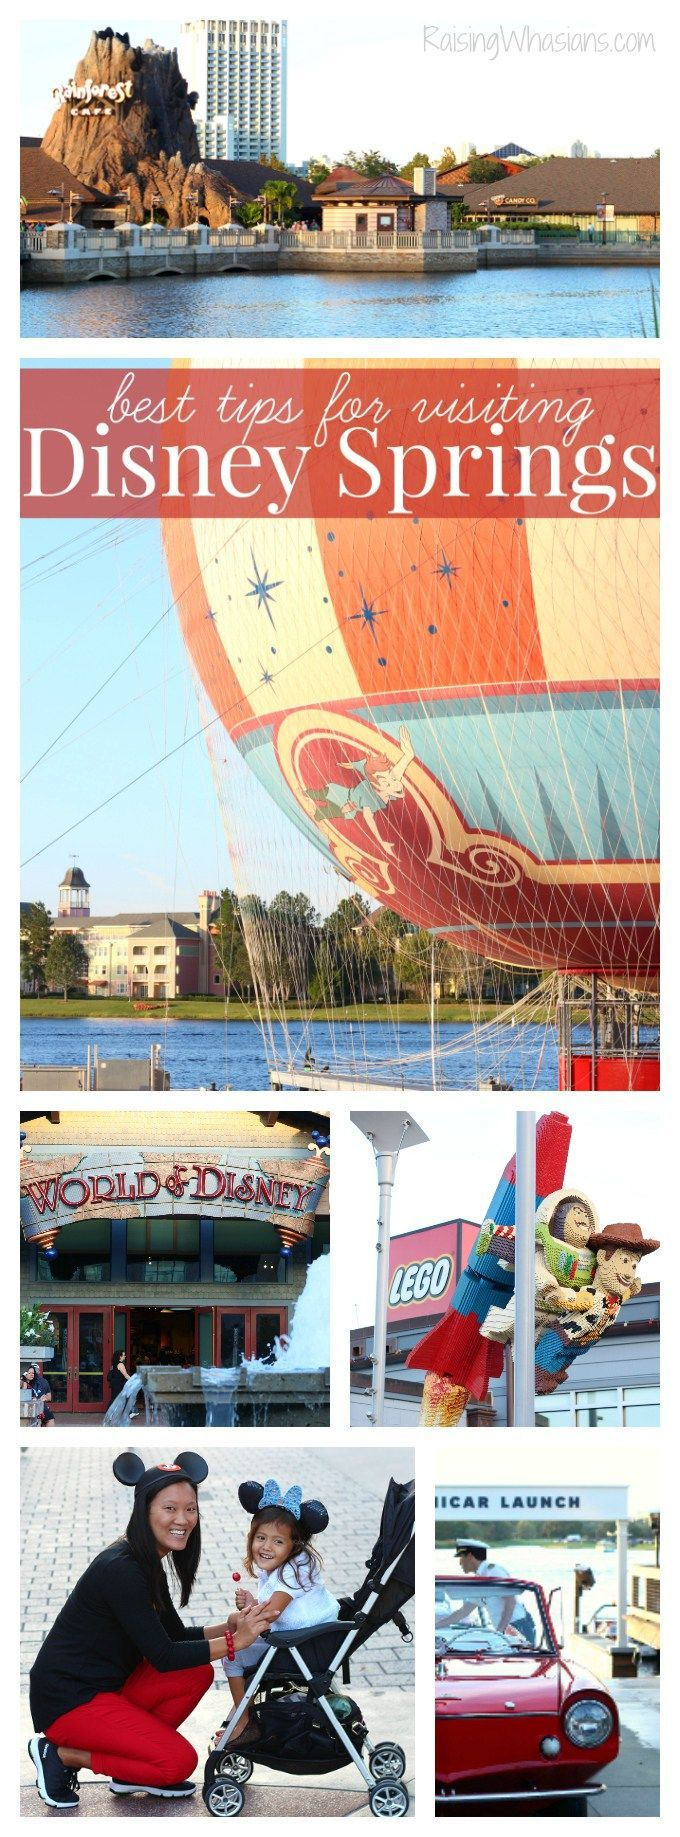 Best Tips for Visiting Disney Springs in Orlando, FL including a list of FREE goodies & activities - Raising Whasians #ReebokCloudRide #IC AD